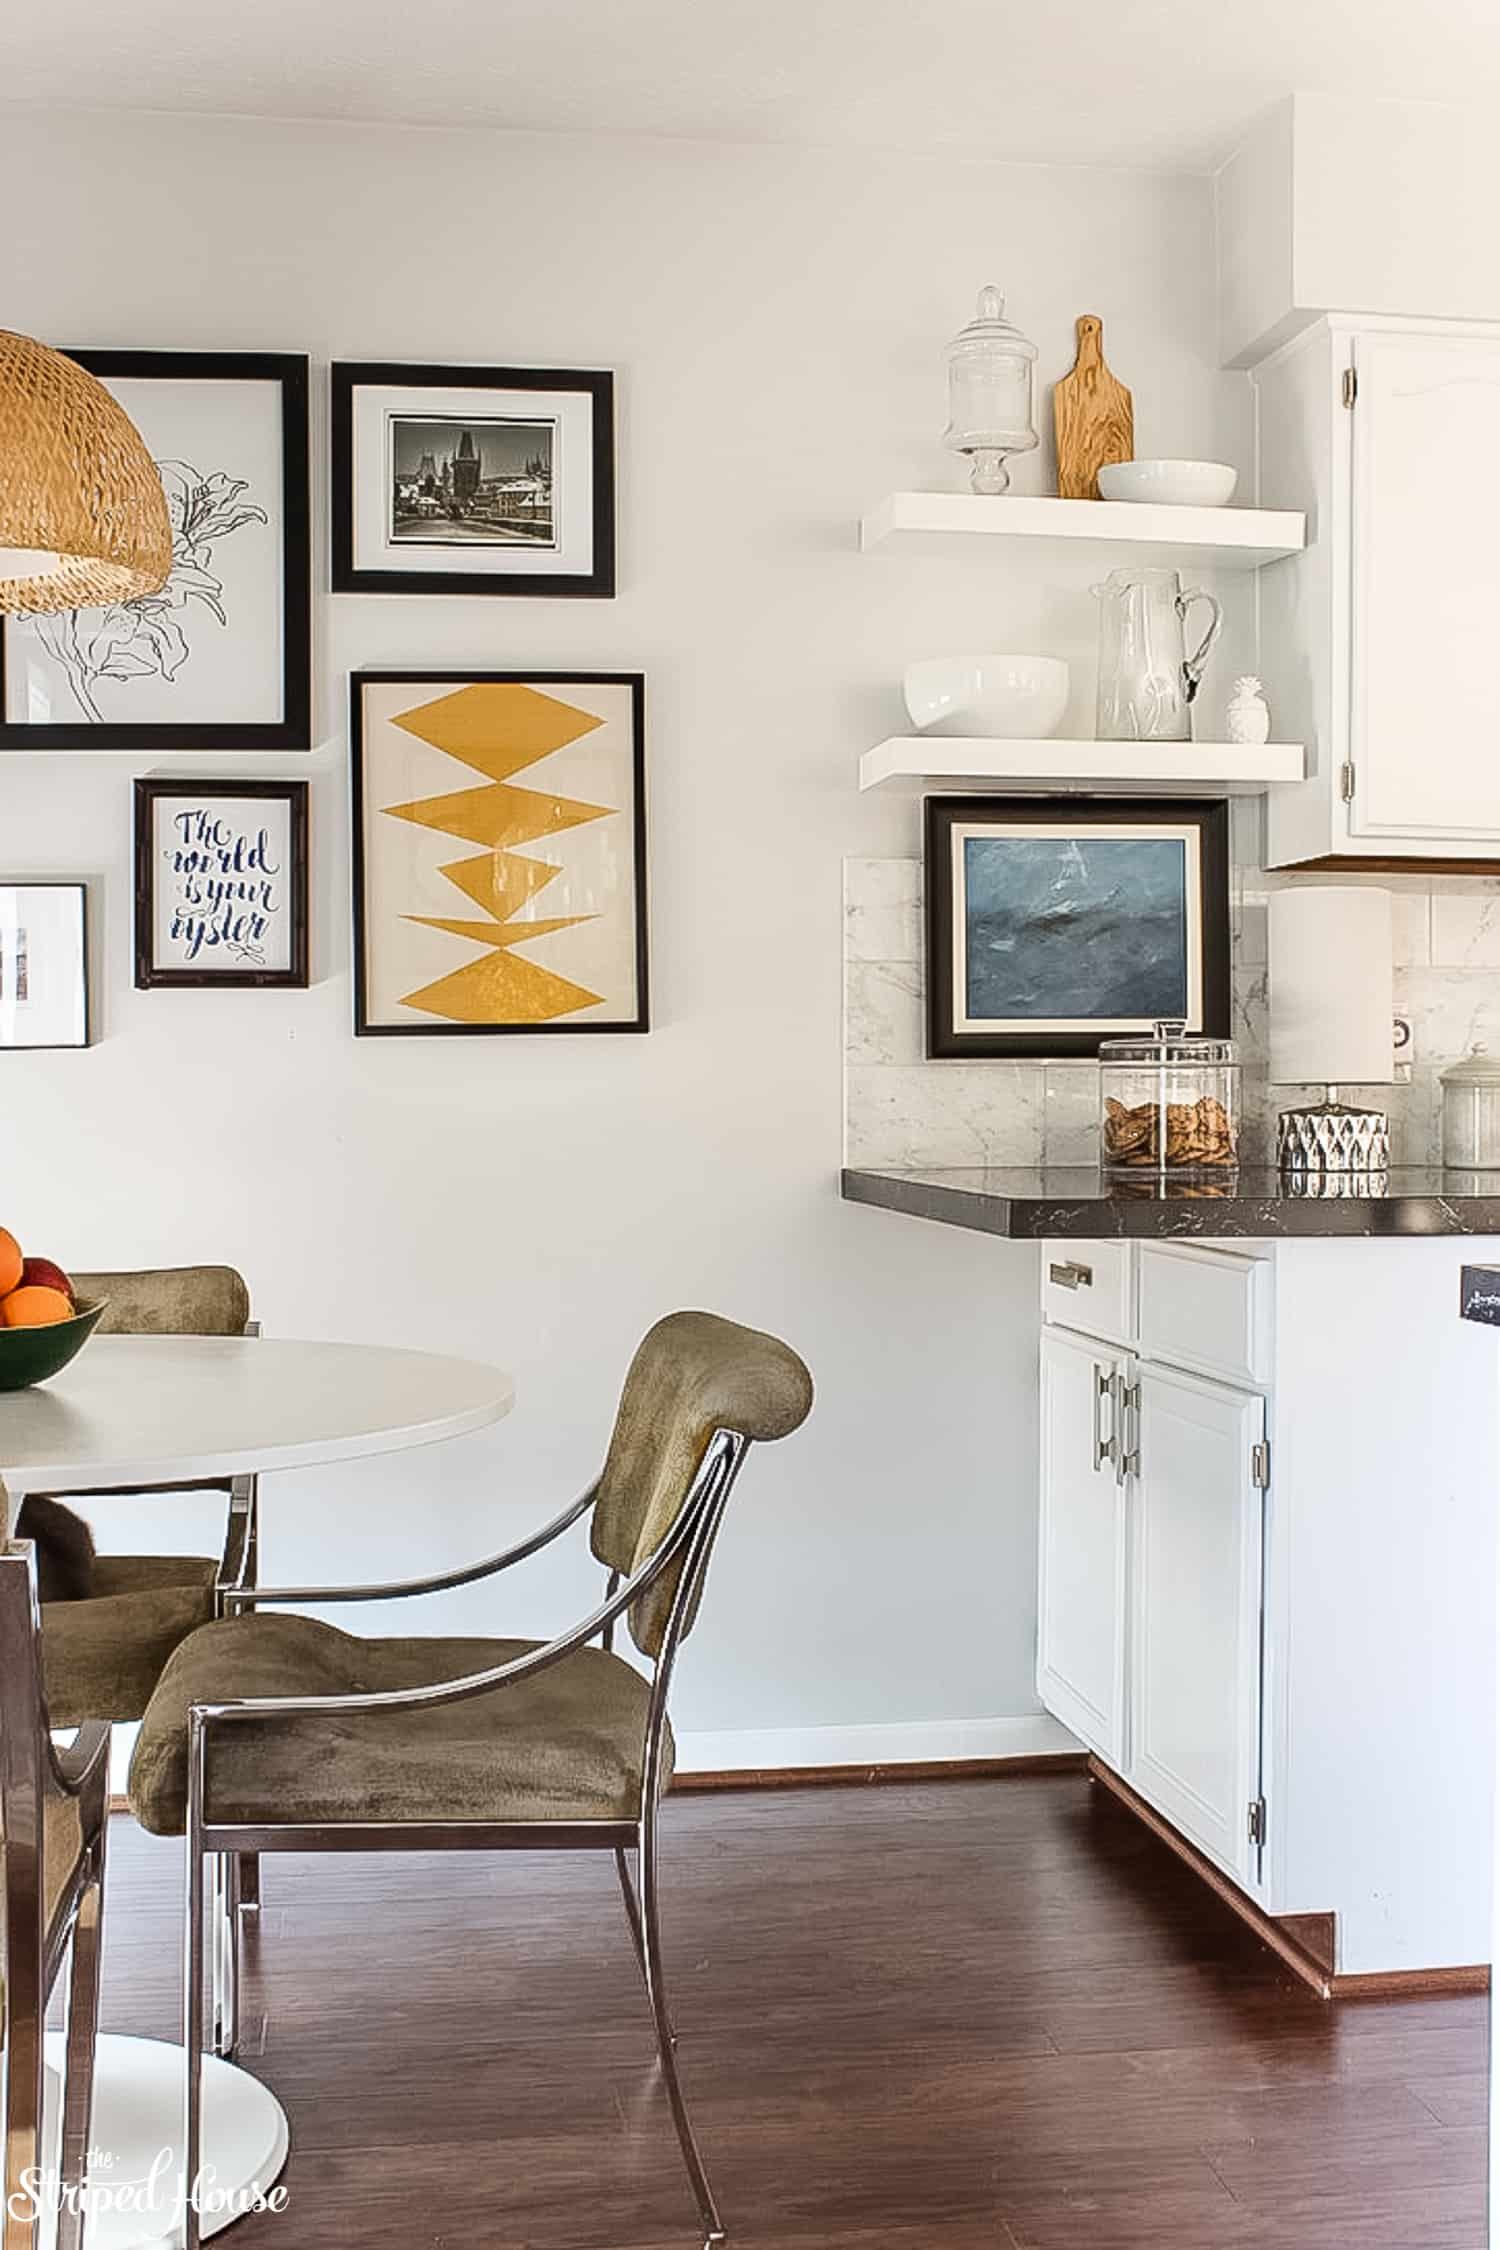 Milo Baughman MCM chairs in black and white traditional contemporary kitchen refresh #midcenturymodern